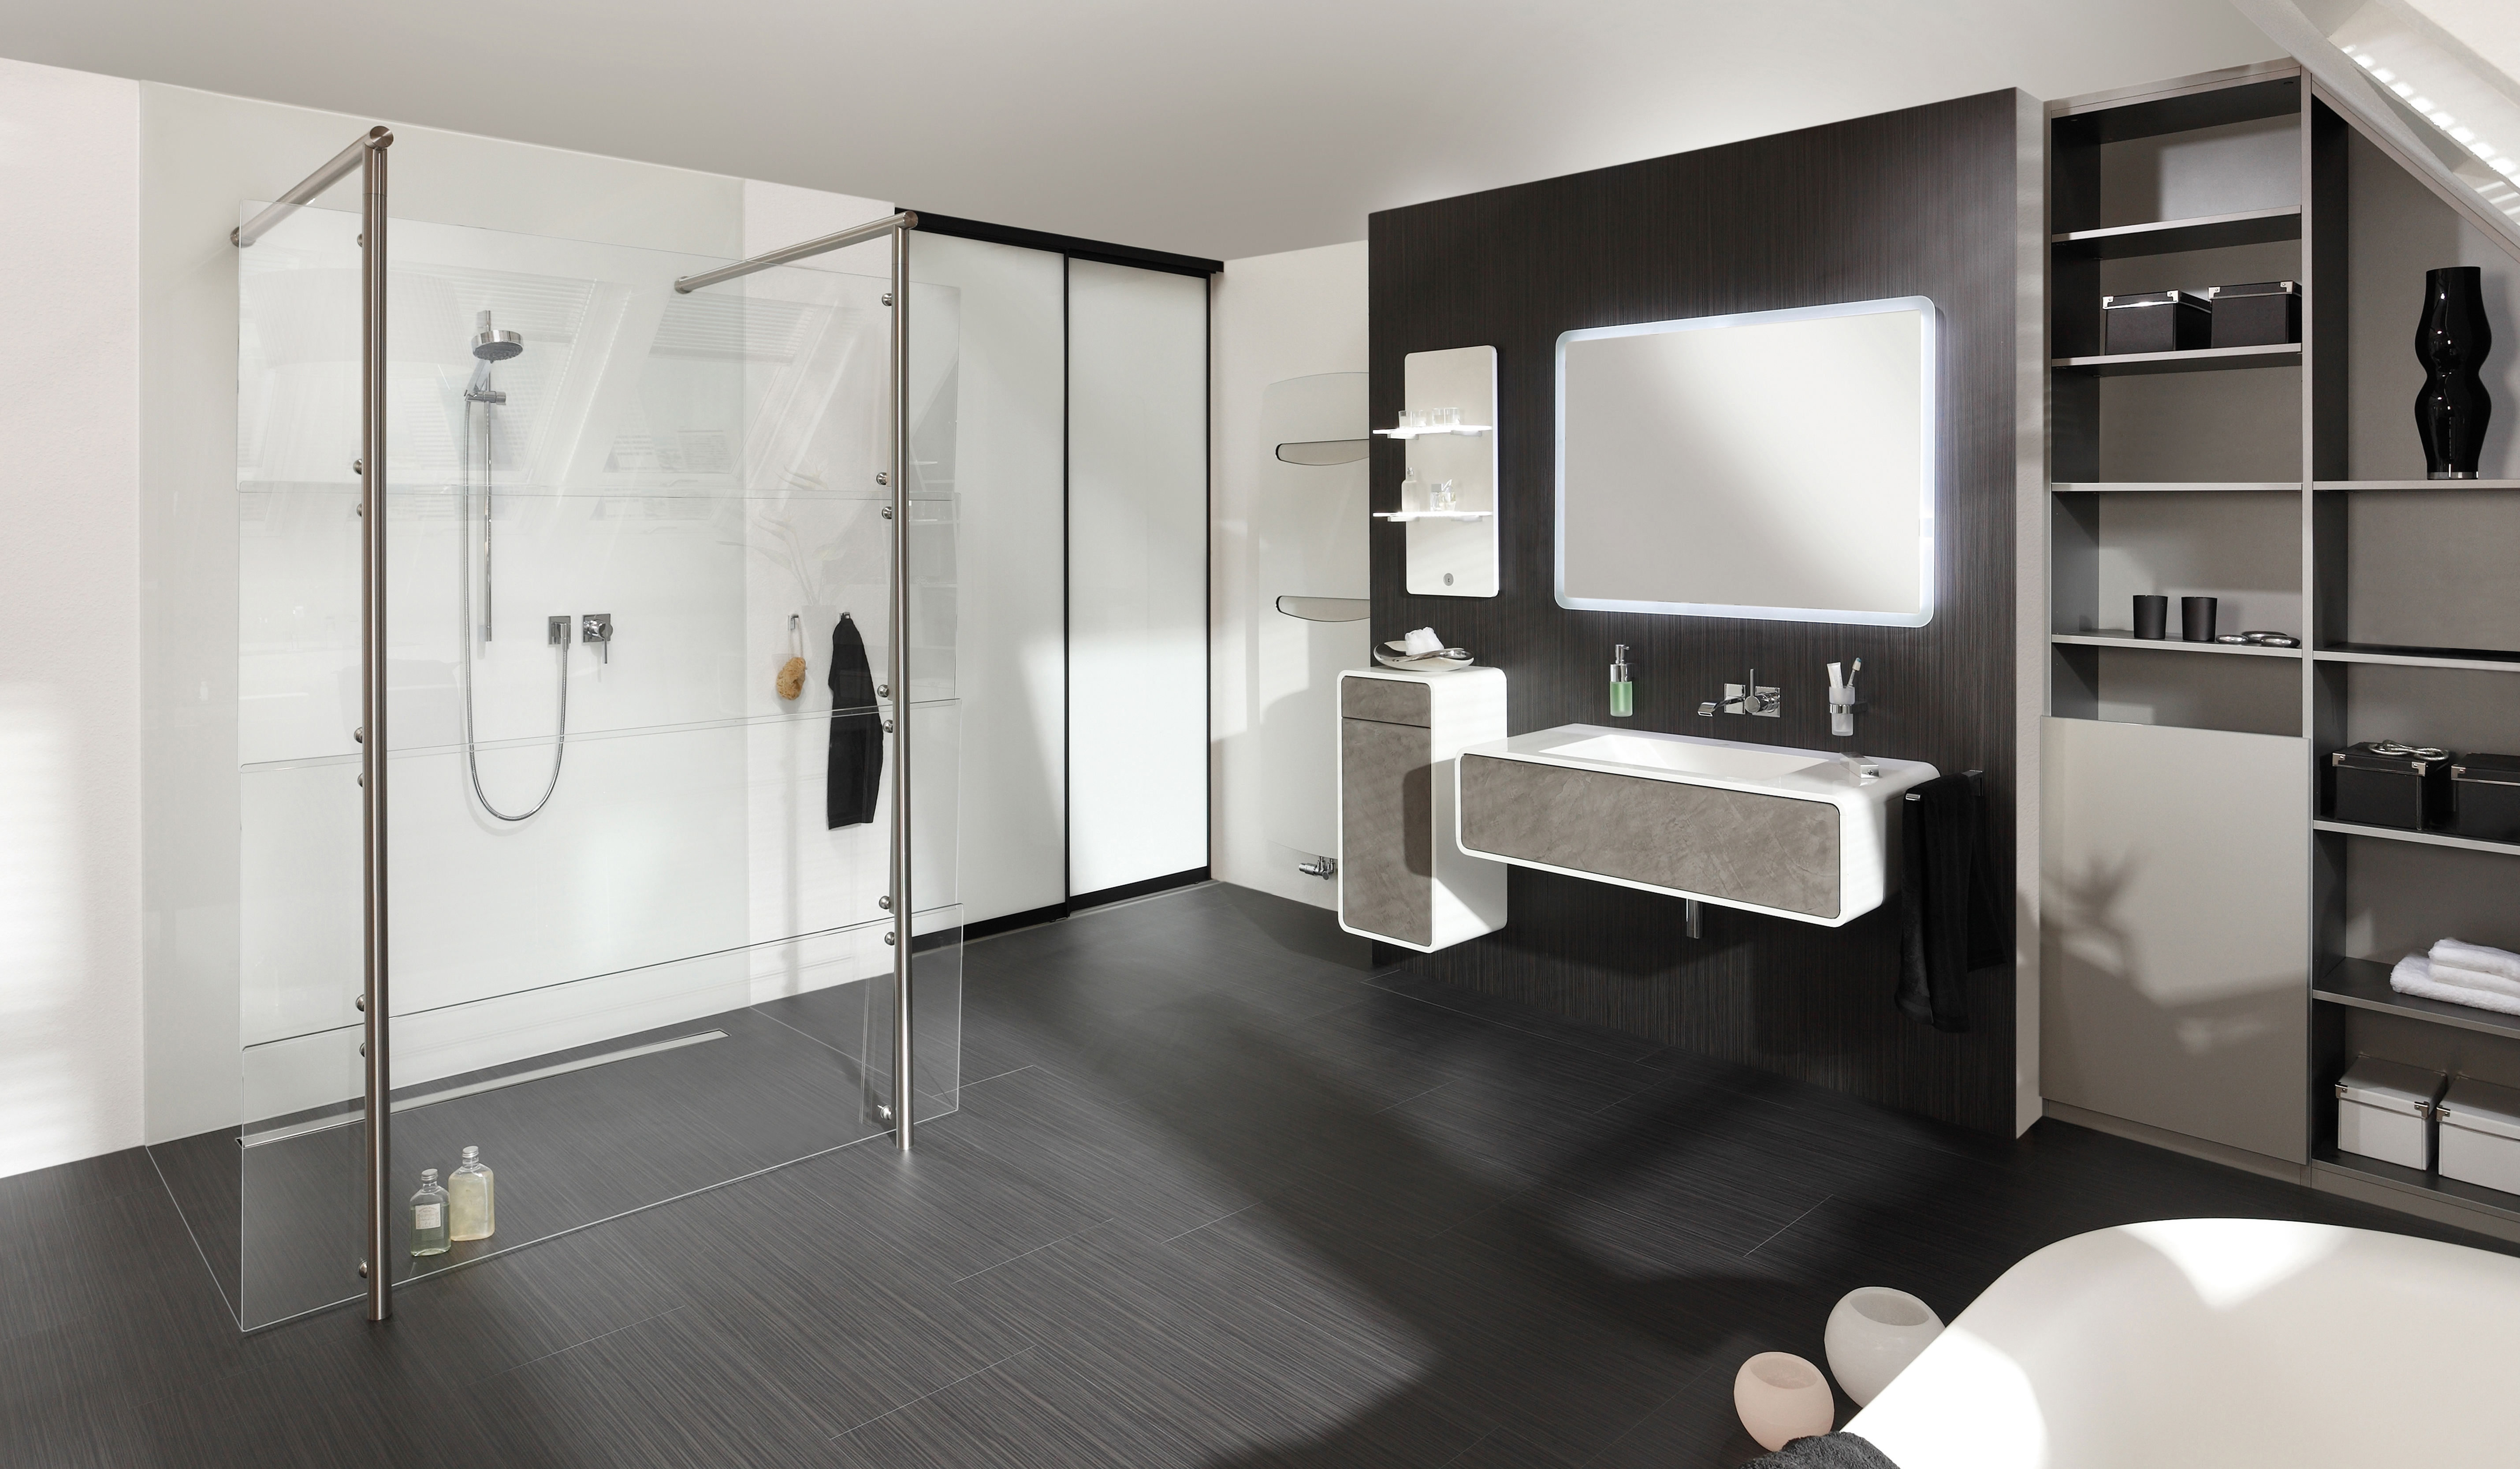 trendletter imm cologne revolution im badezimmer. Black Bedroom Furniture Sets. Home Design Ideas